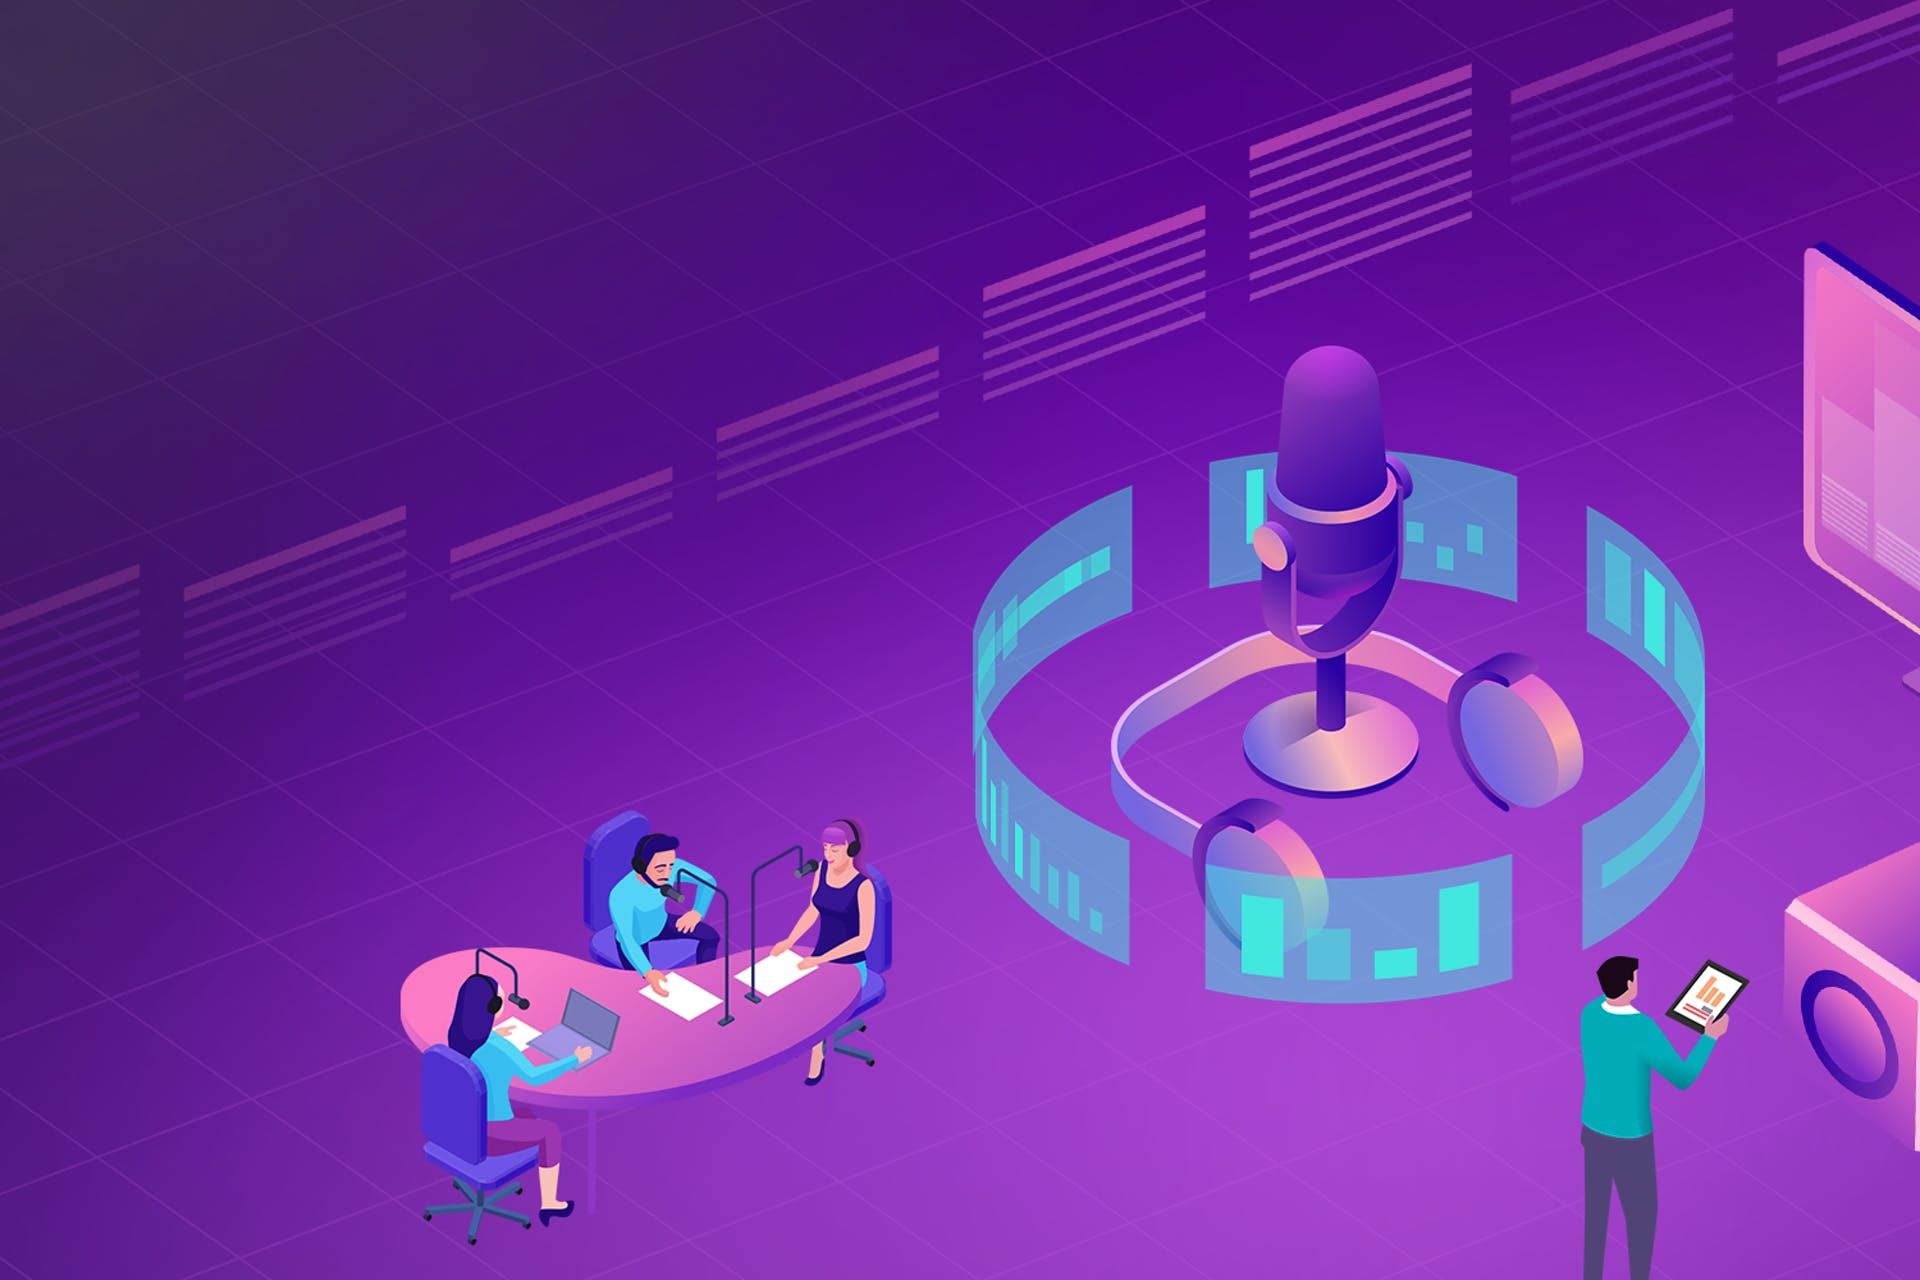 Illustration of a podcasting studio against a purple backdrop